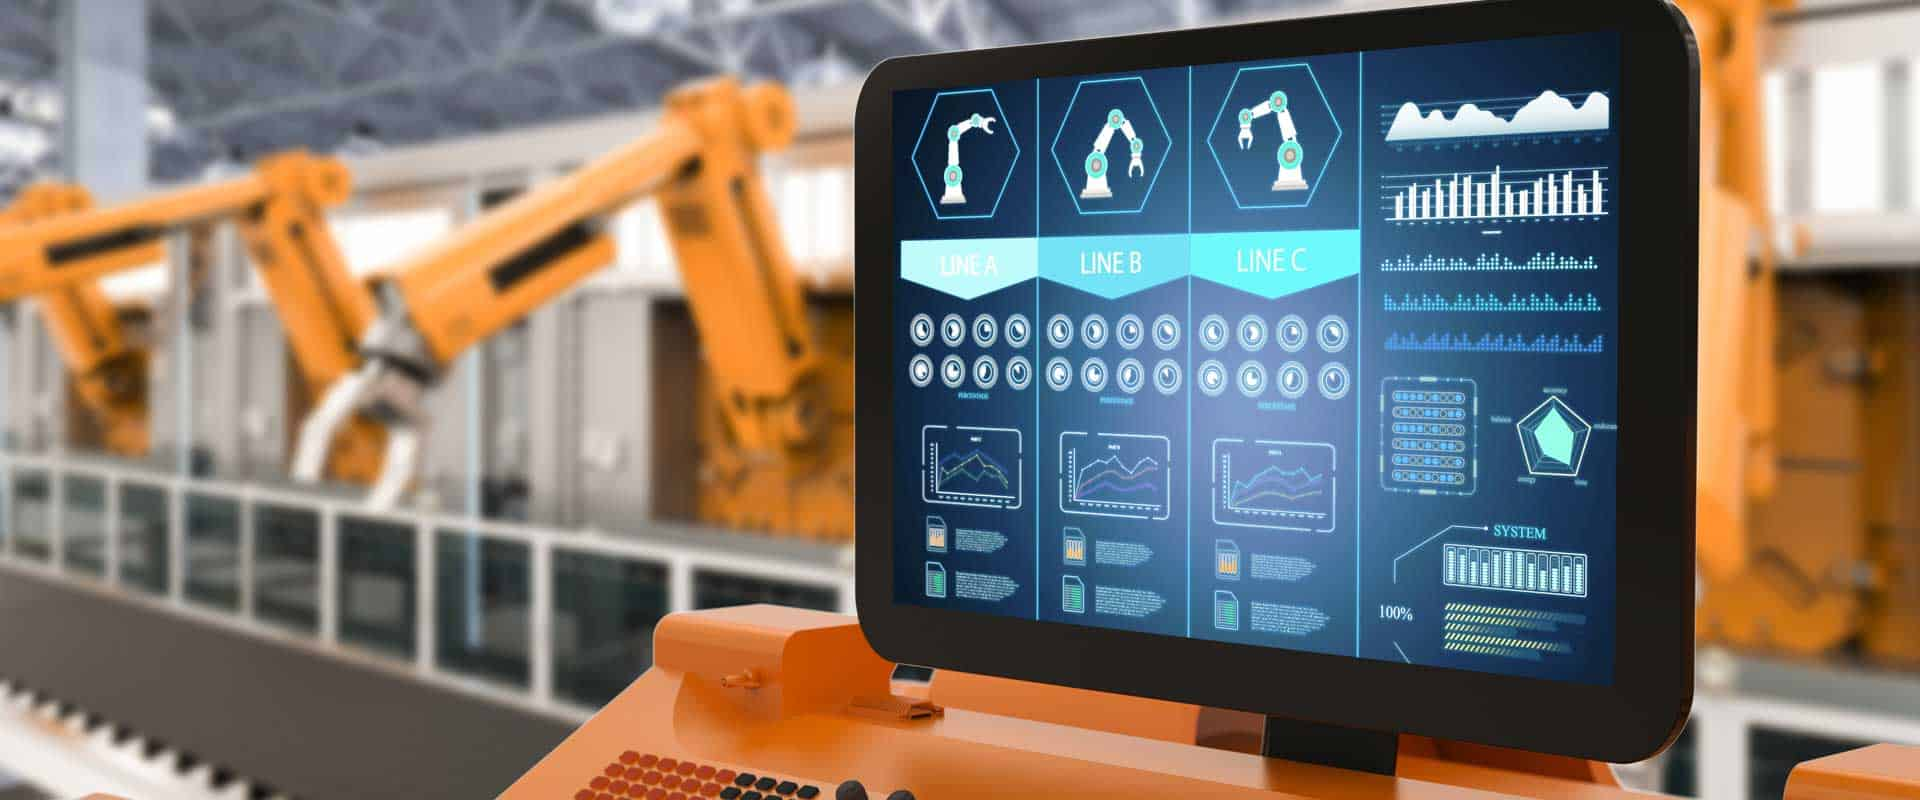 Designing User Experience for the Factories of Tomorrow Image